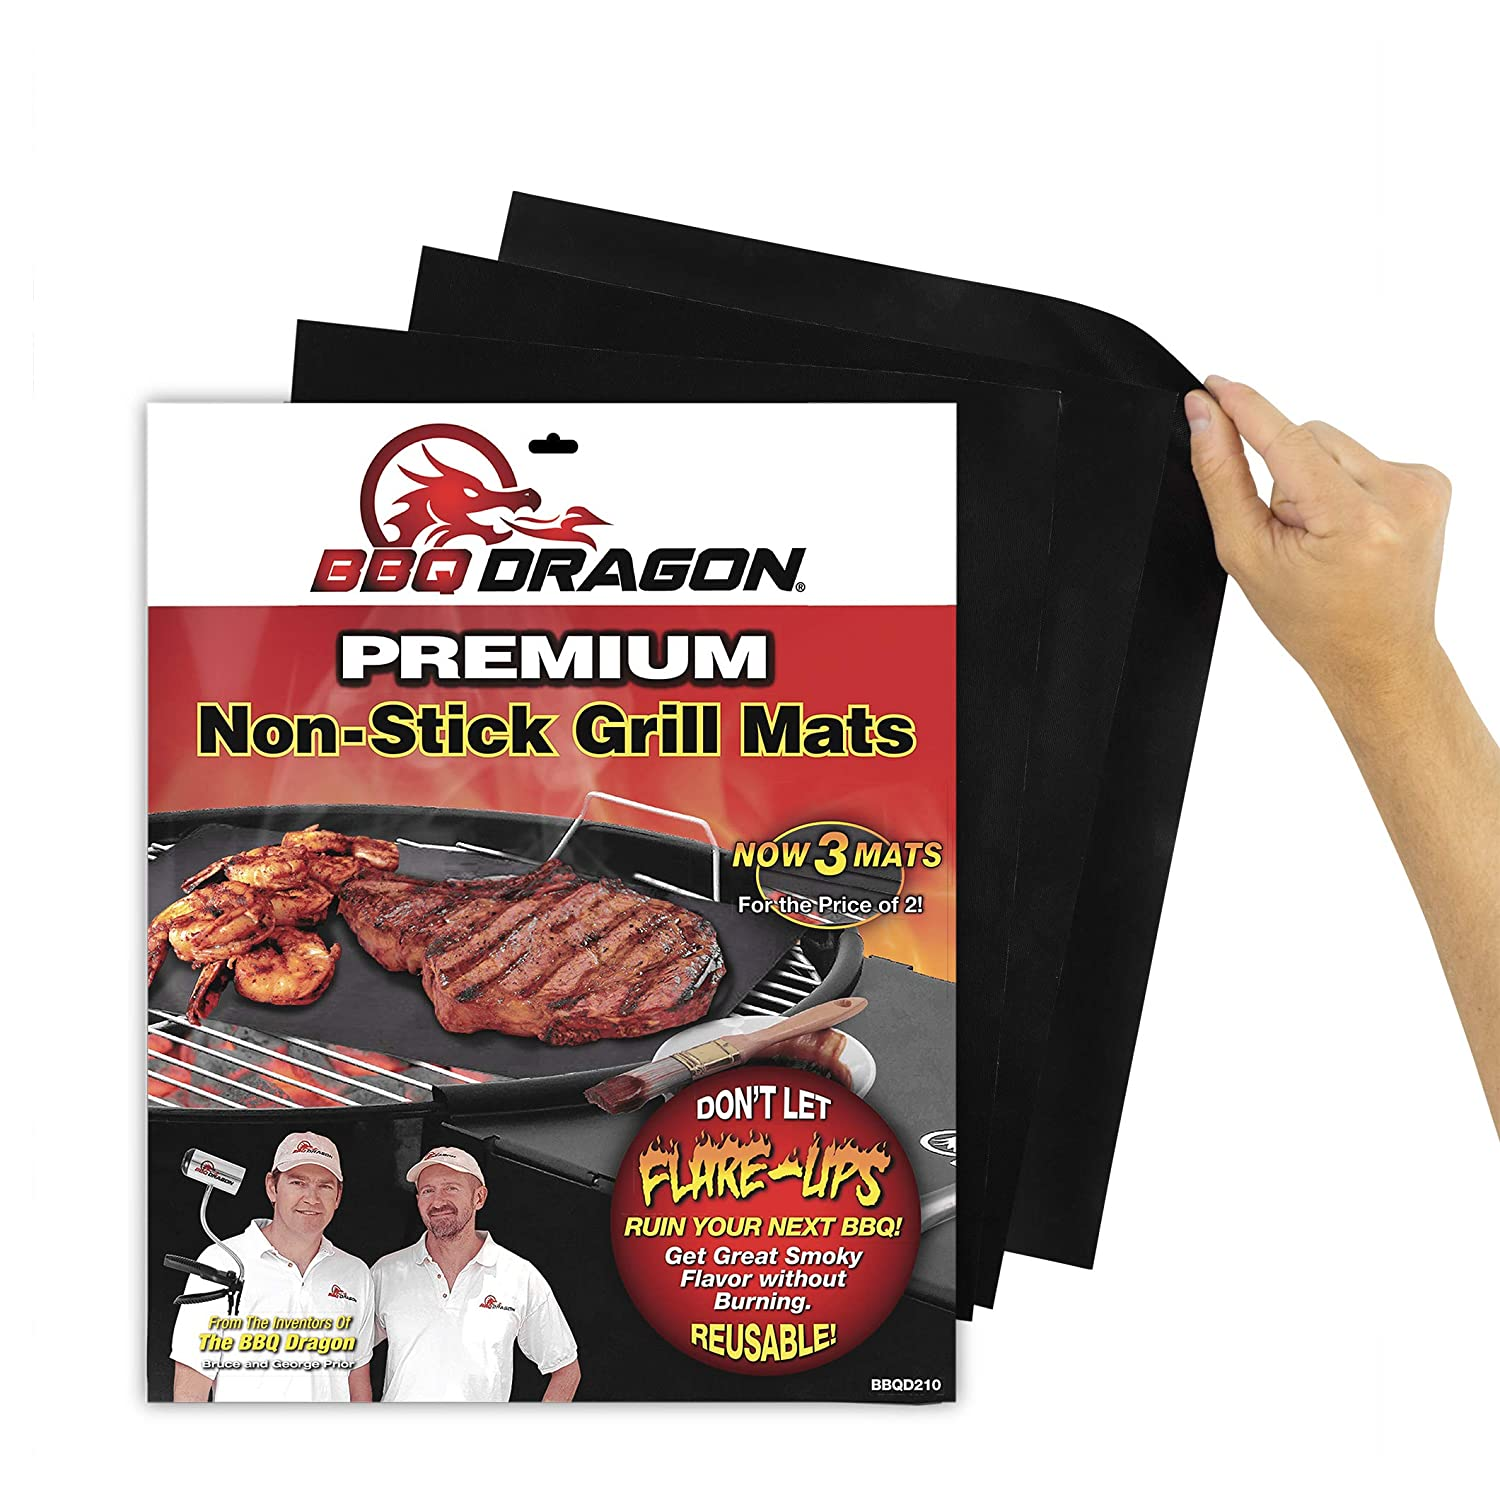 BBQ Dragon Grill Mats Set of 3, Black, Heavy Duty Large Reusable, Grill Pans Non Stick, Charcoal BBQ, Barbecue Grilling and Baking Accessories for Grilling, Easy Clean